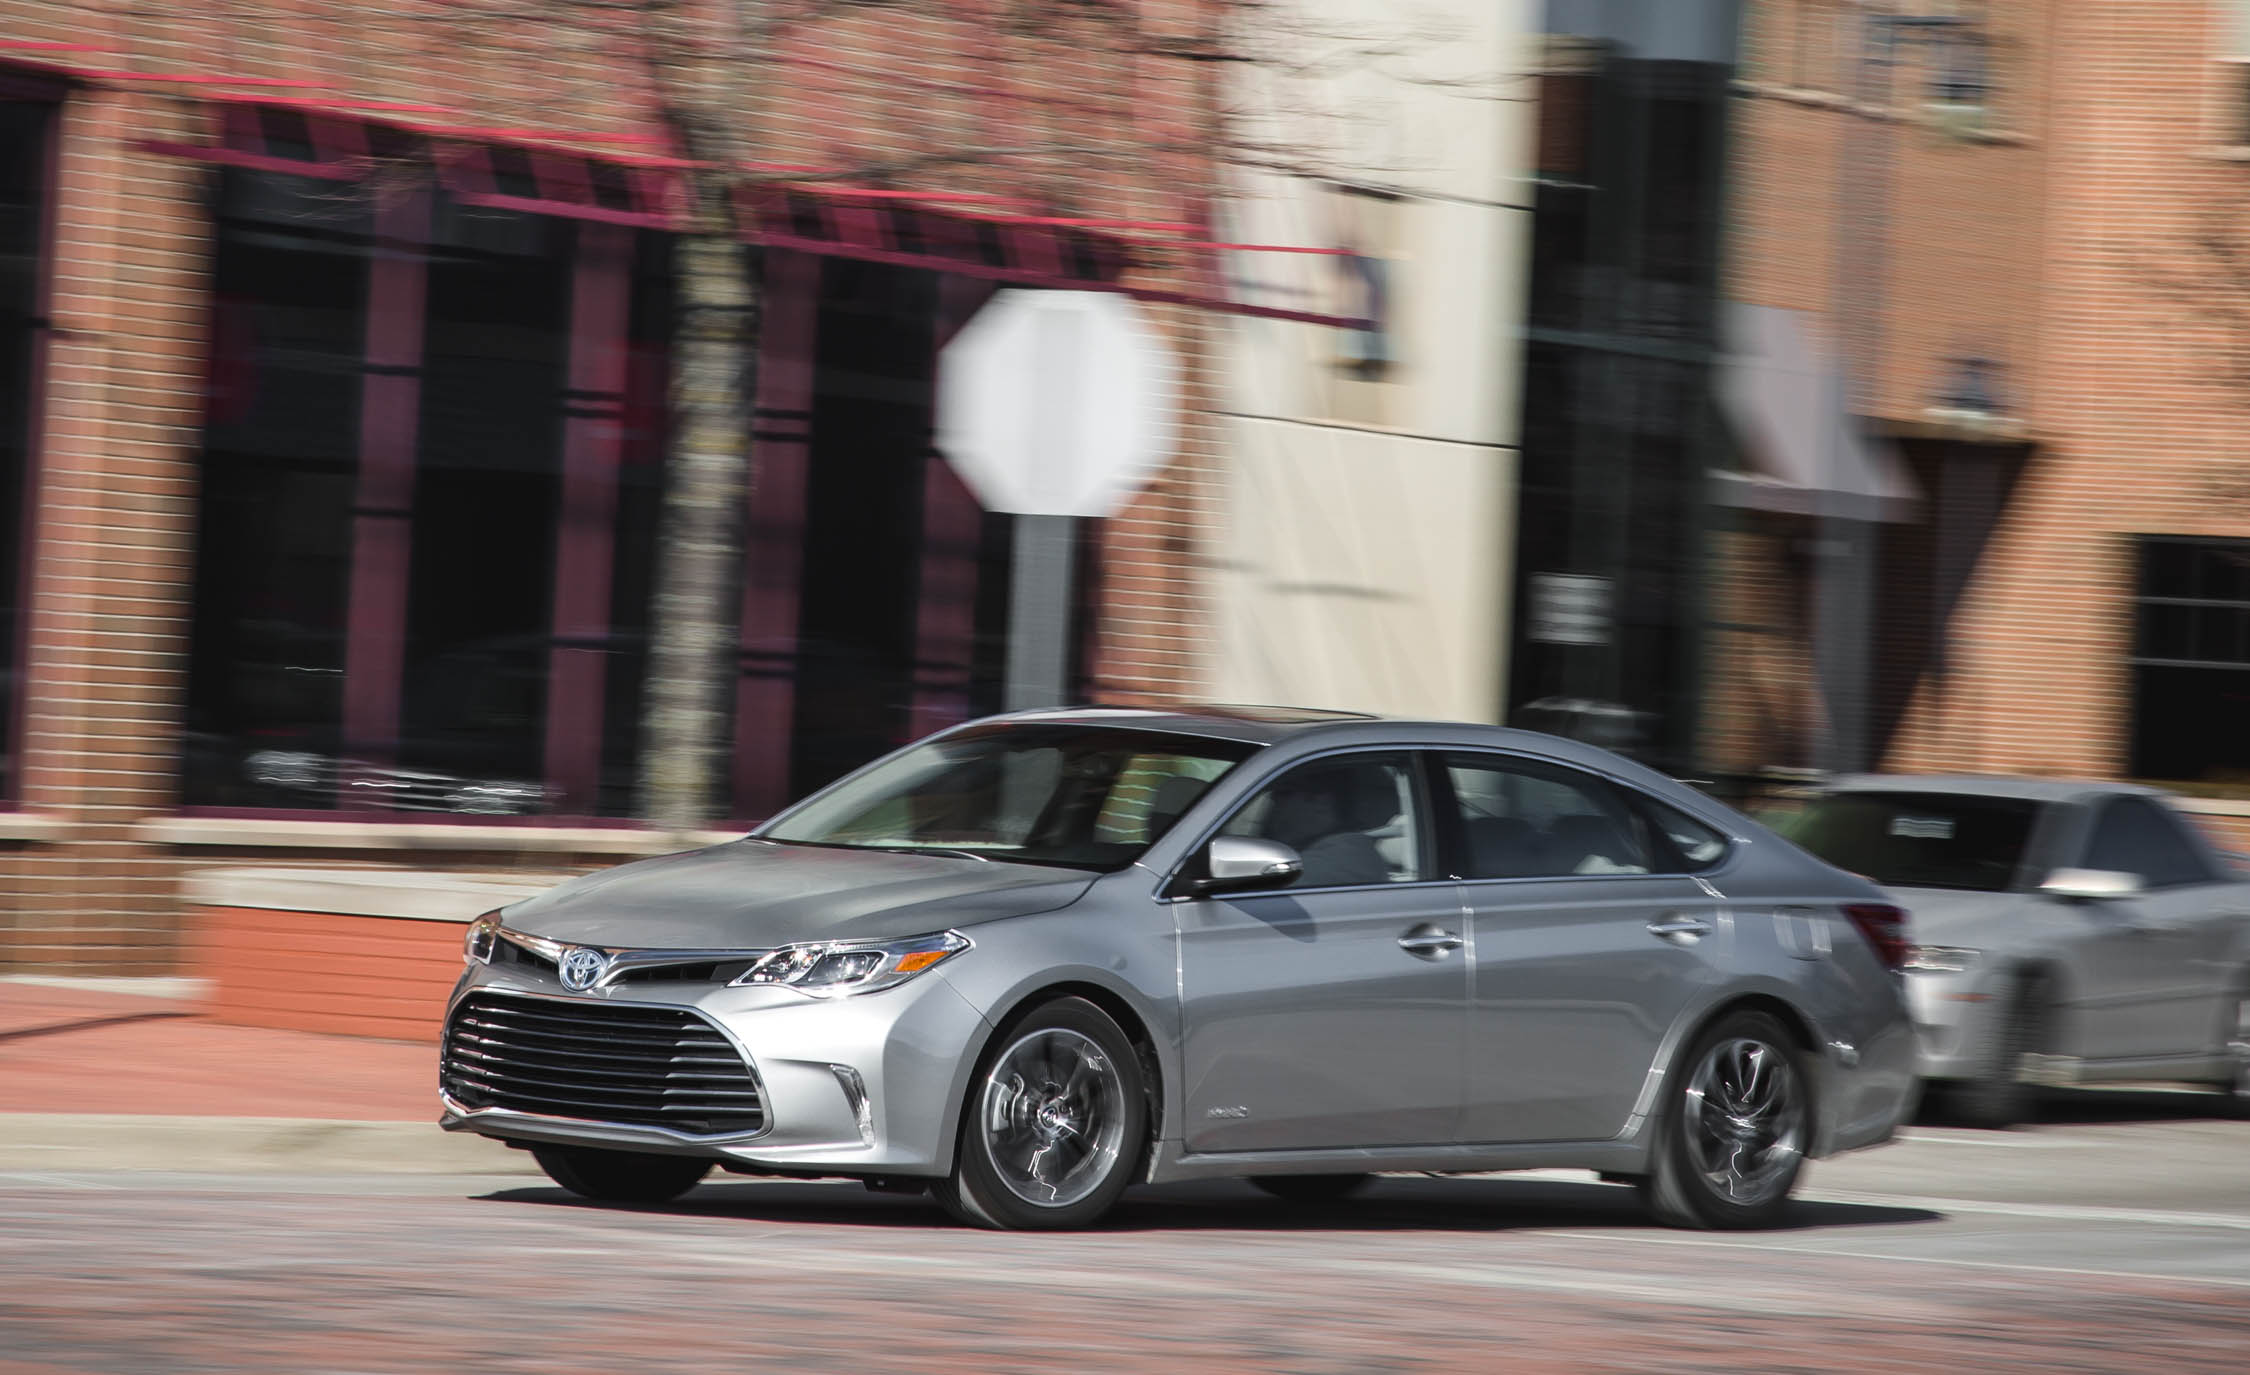 2016 Toyota Avalon Hybrid Pictures Gallery (24 Images)